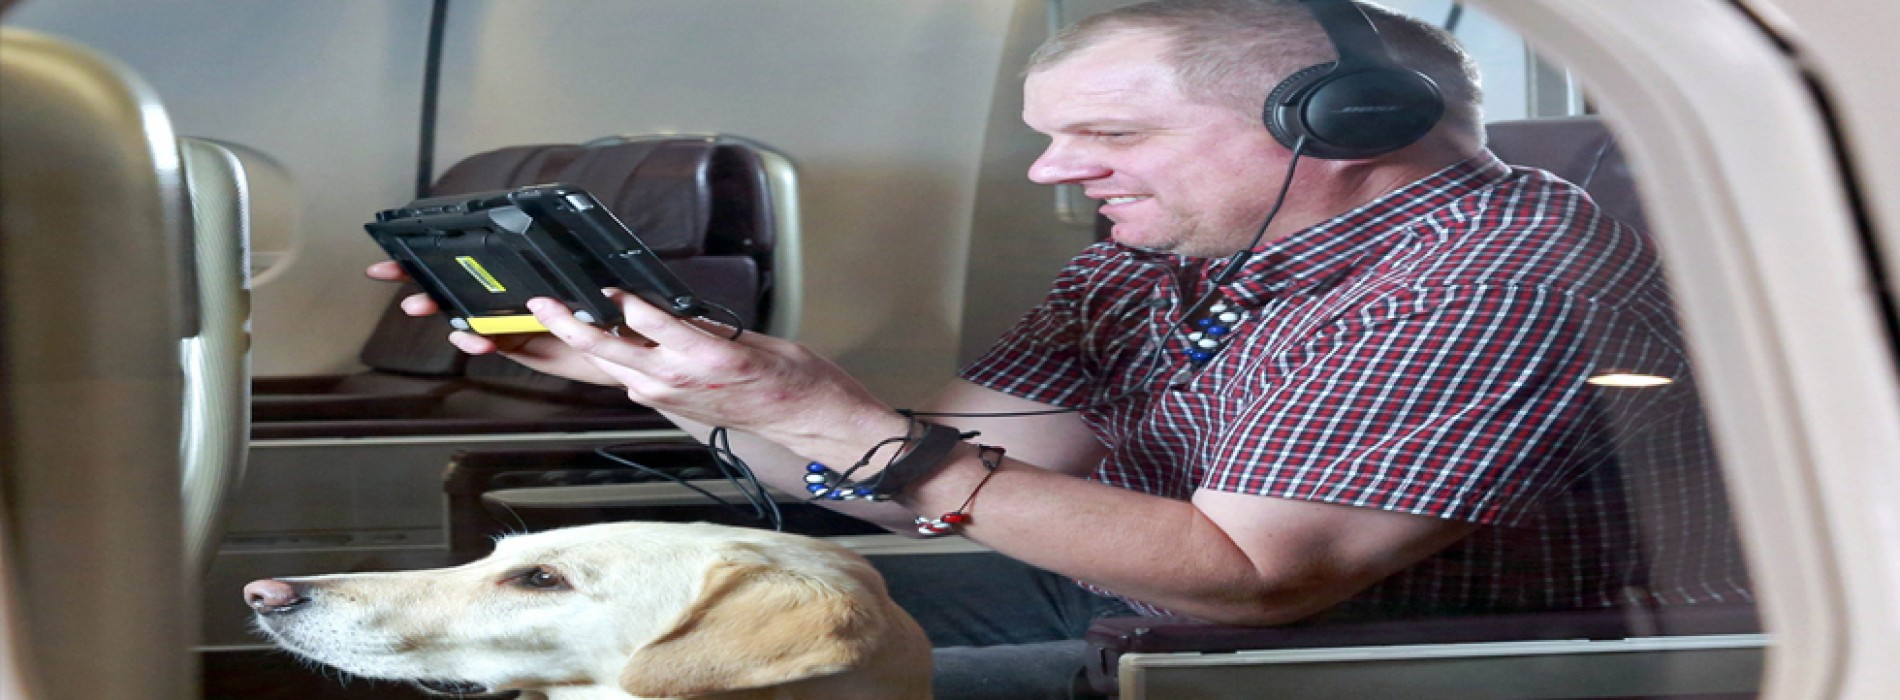 Virgin Atlantic becomes first airline to offer accessible entertainment for customers with sight loss